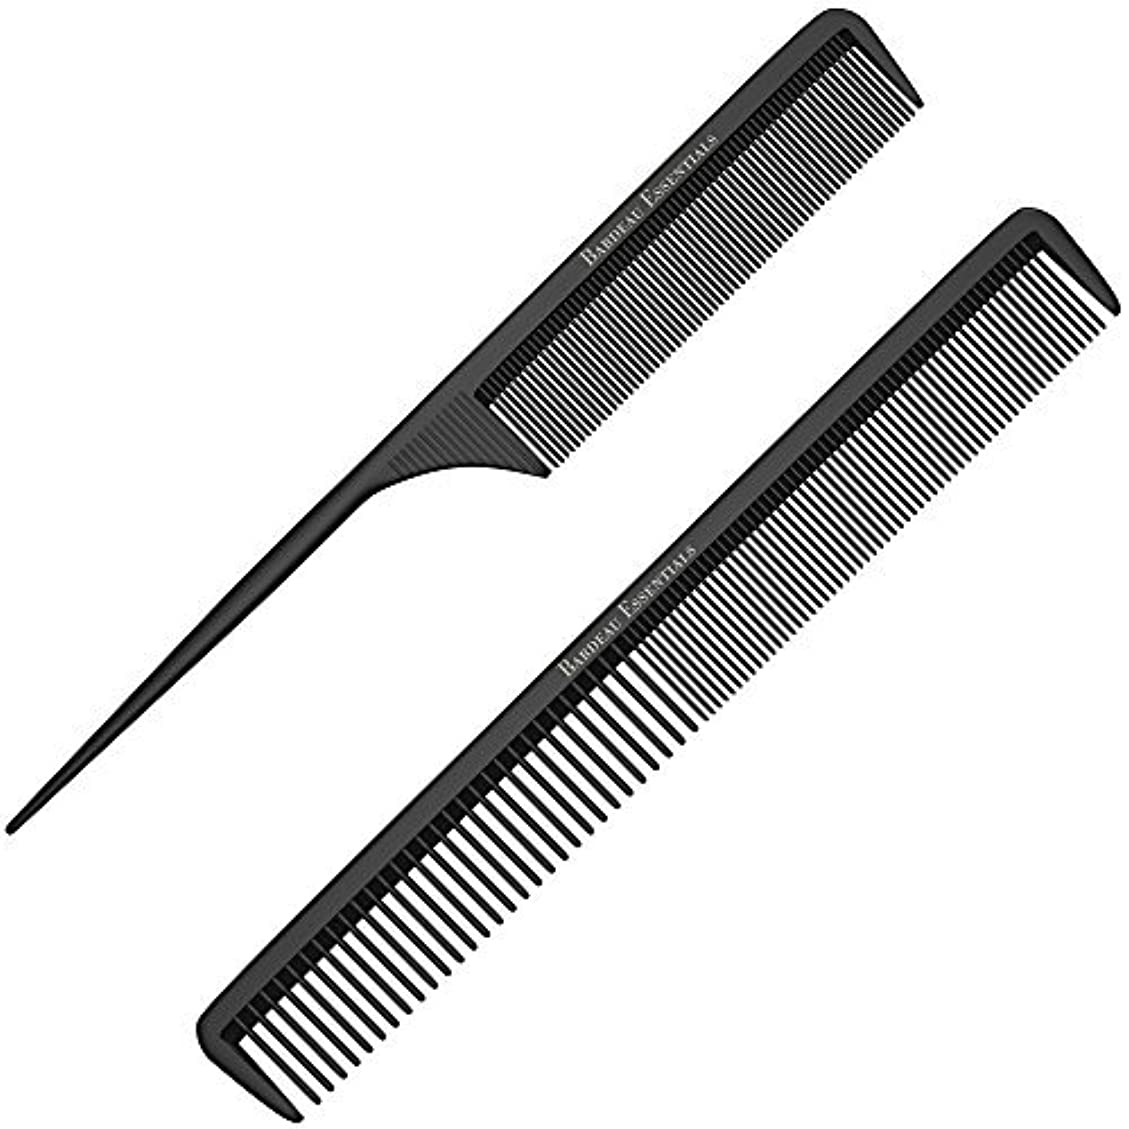 いわゆる機械団結Styling Comb and Tail Comb Combo Pack | Professional 8.75  Black Carbon Fiber Anti Static Chemical And Heat Resistant...